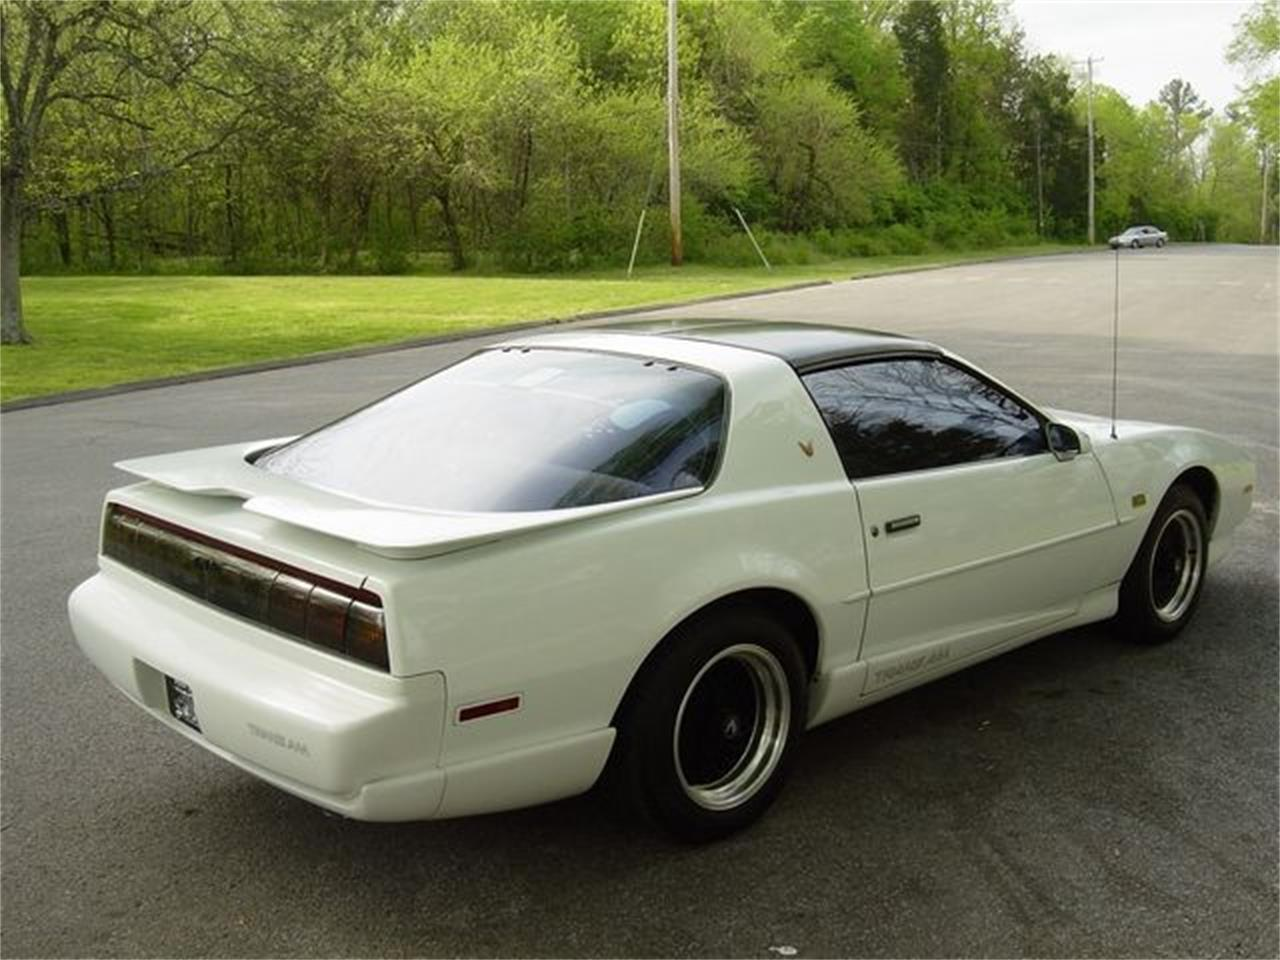 Large Picture of '92 Pontiac Firebird Trans Am located in Tennessee - Q3G9